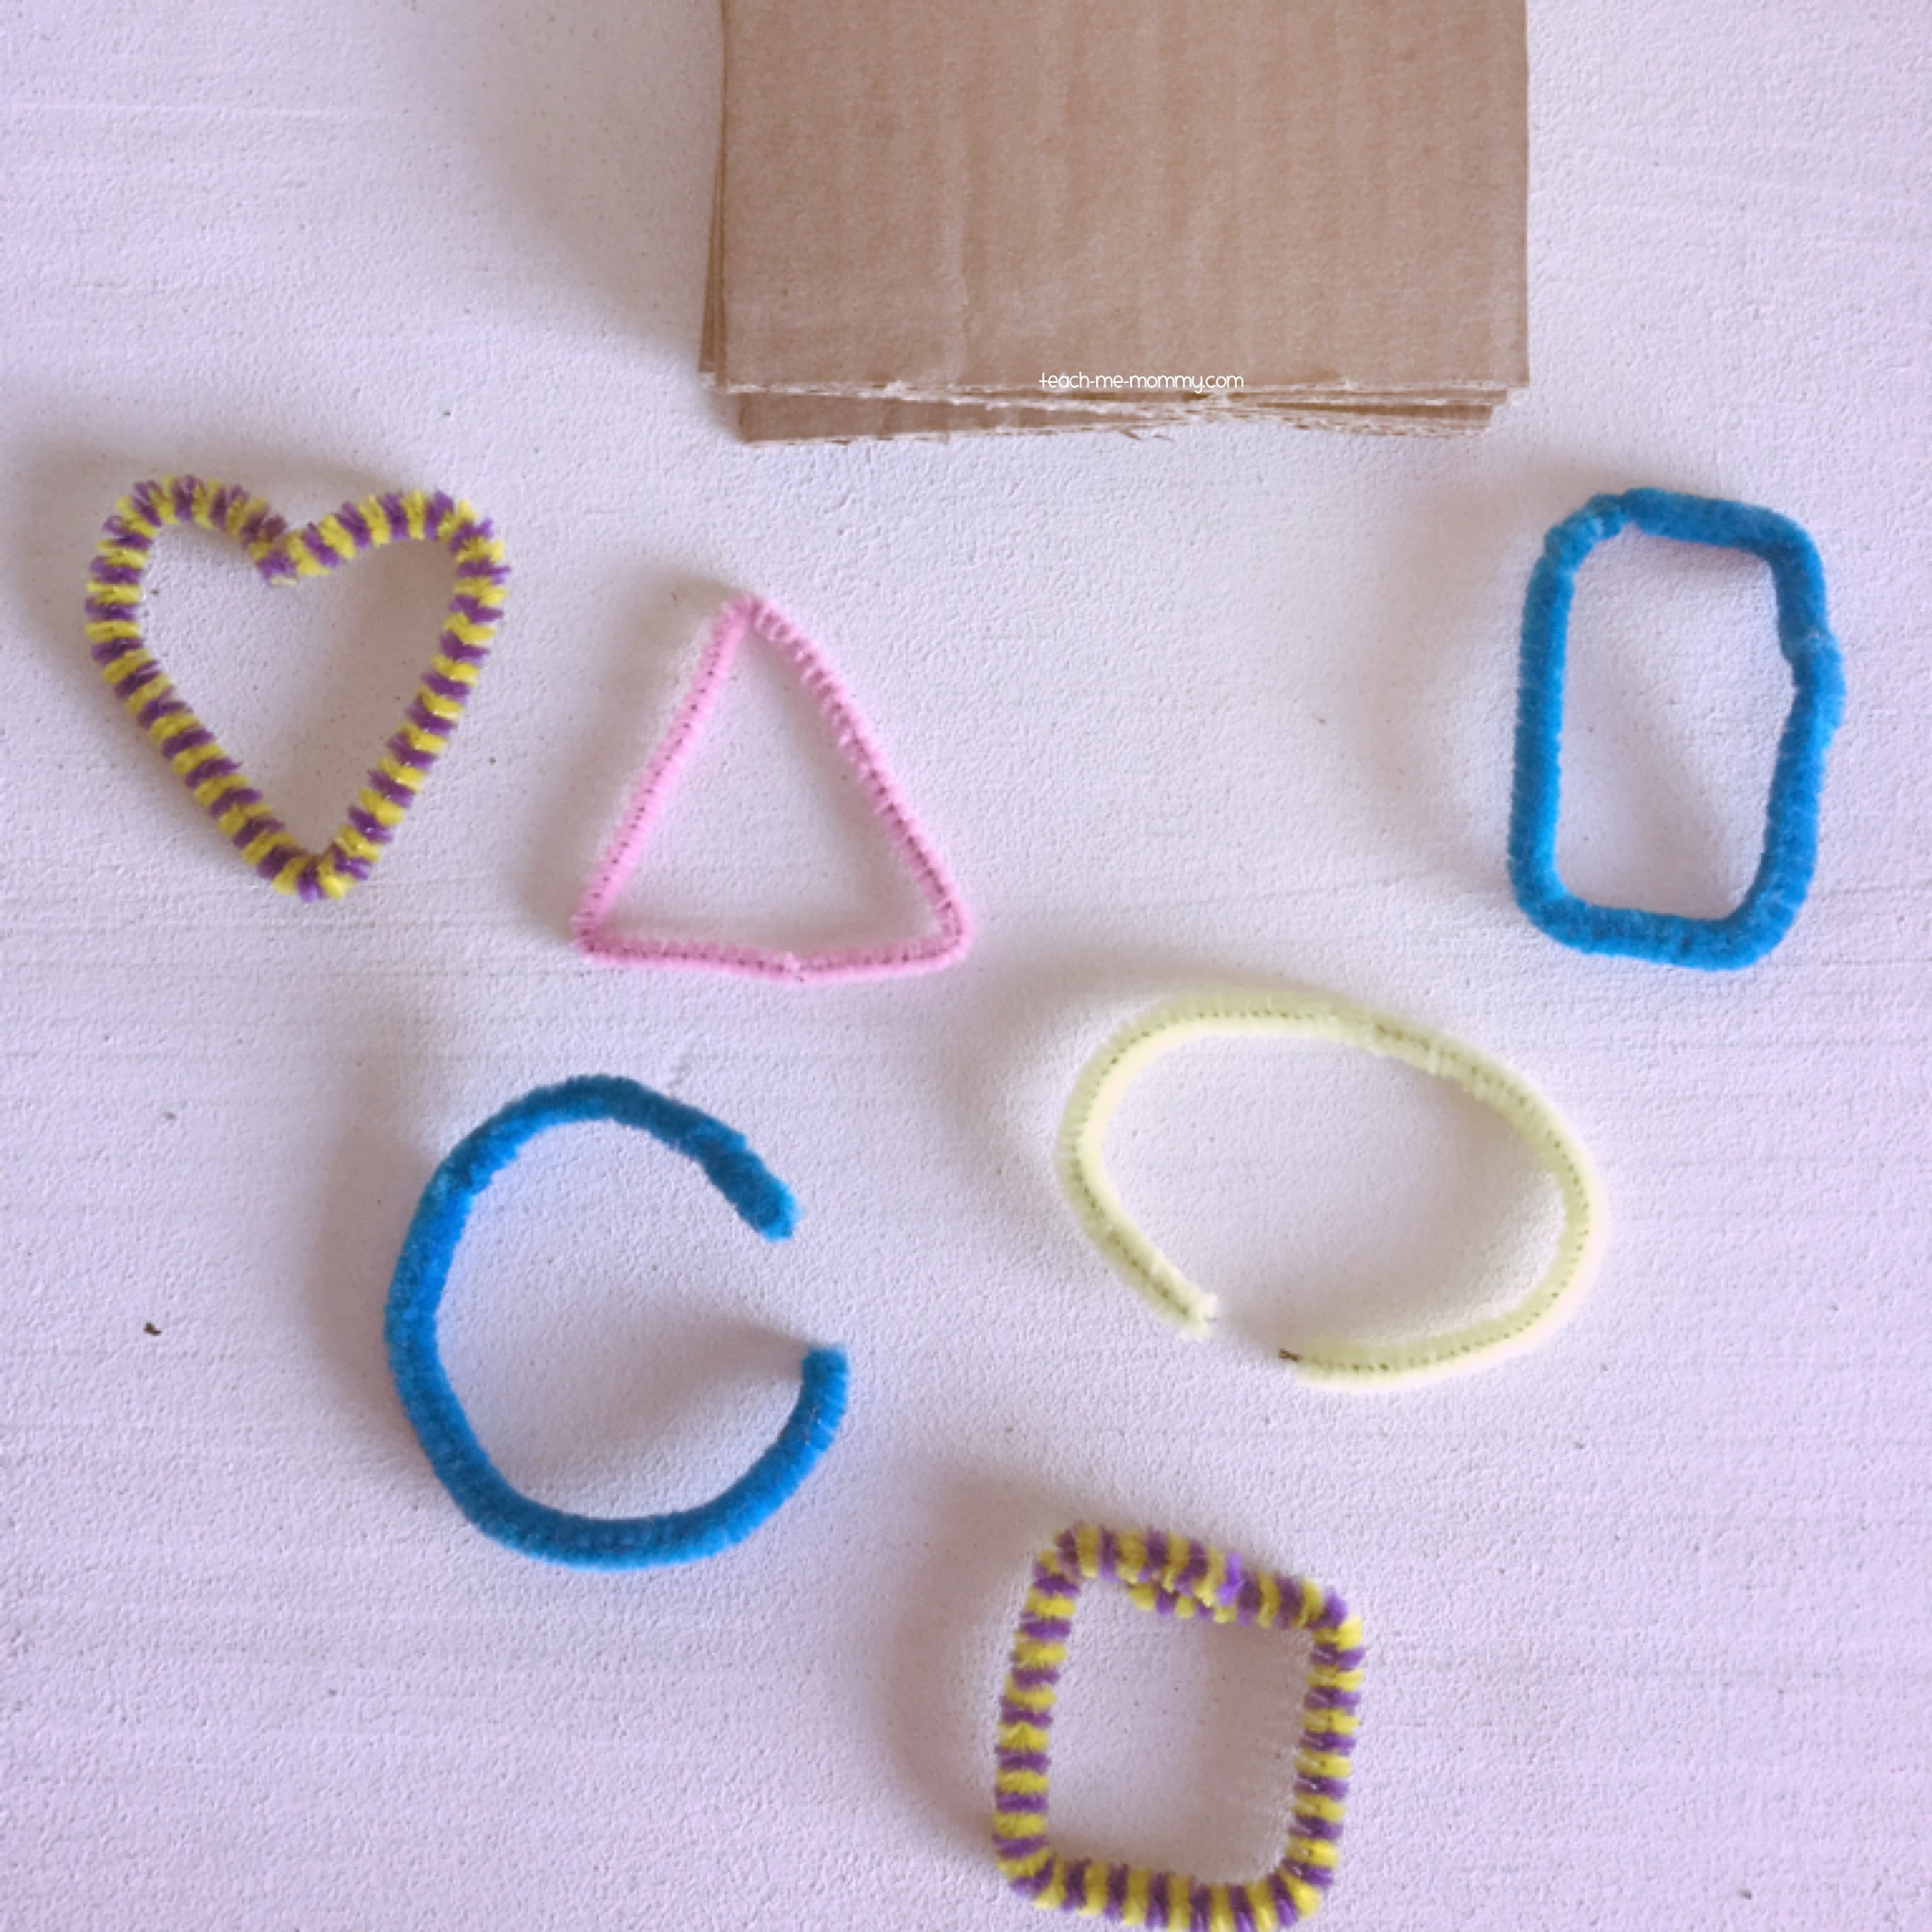 Pipecleaner shapes